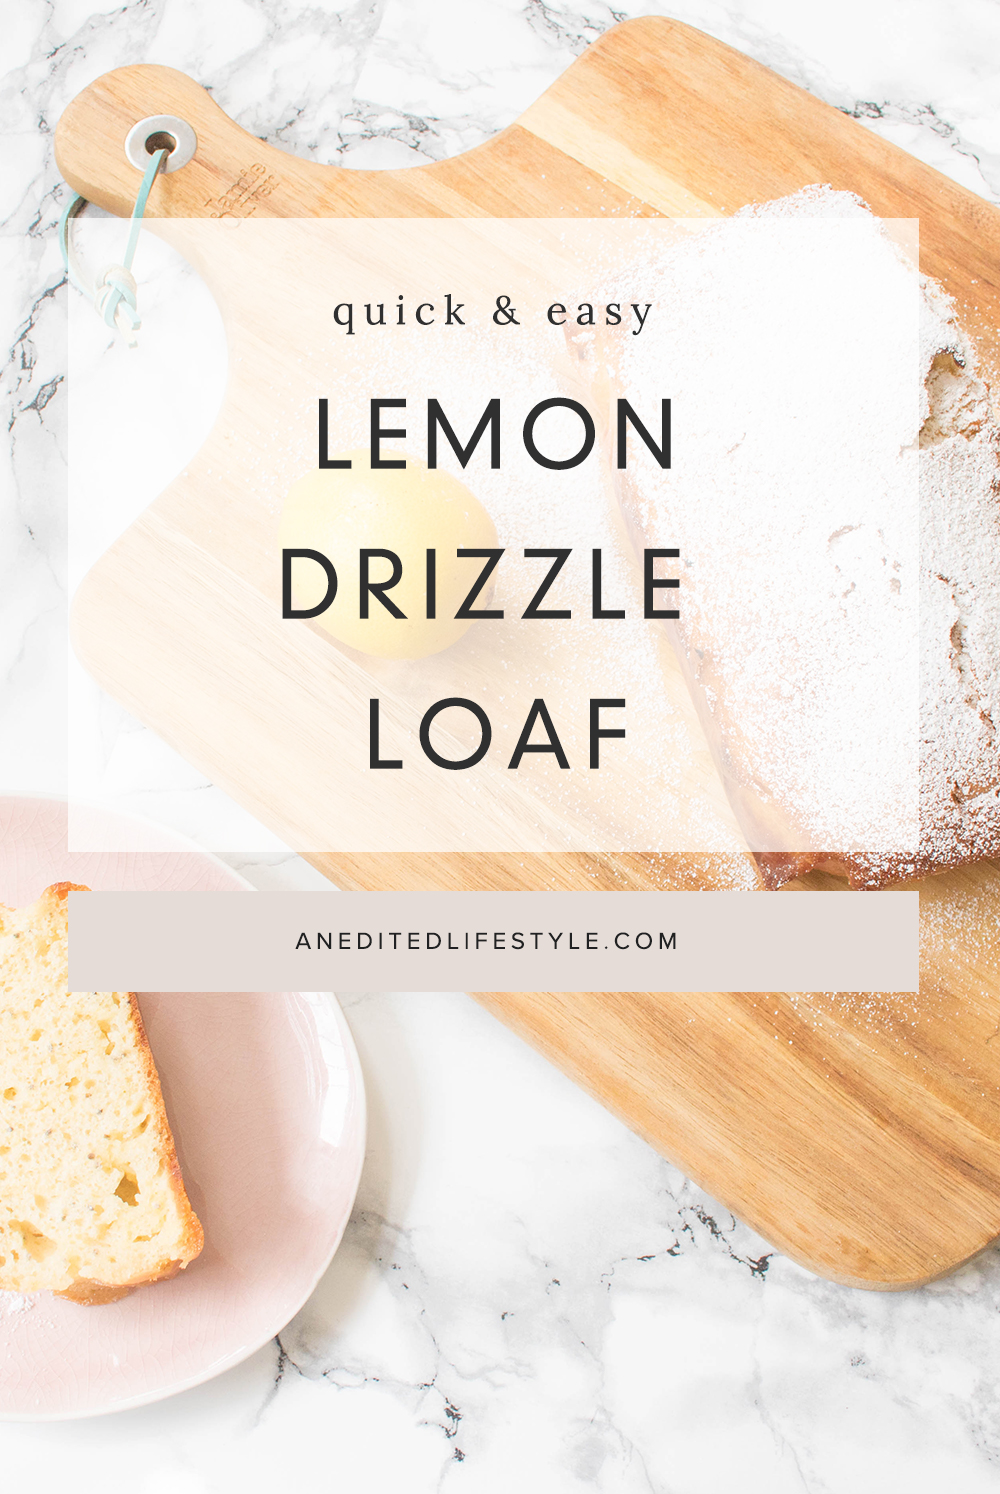 an edited lifestyle recipe sweet lemon drizzle loaf 3